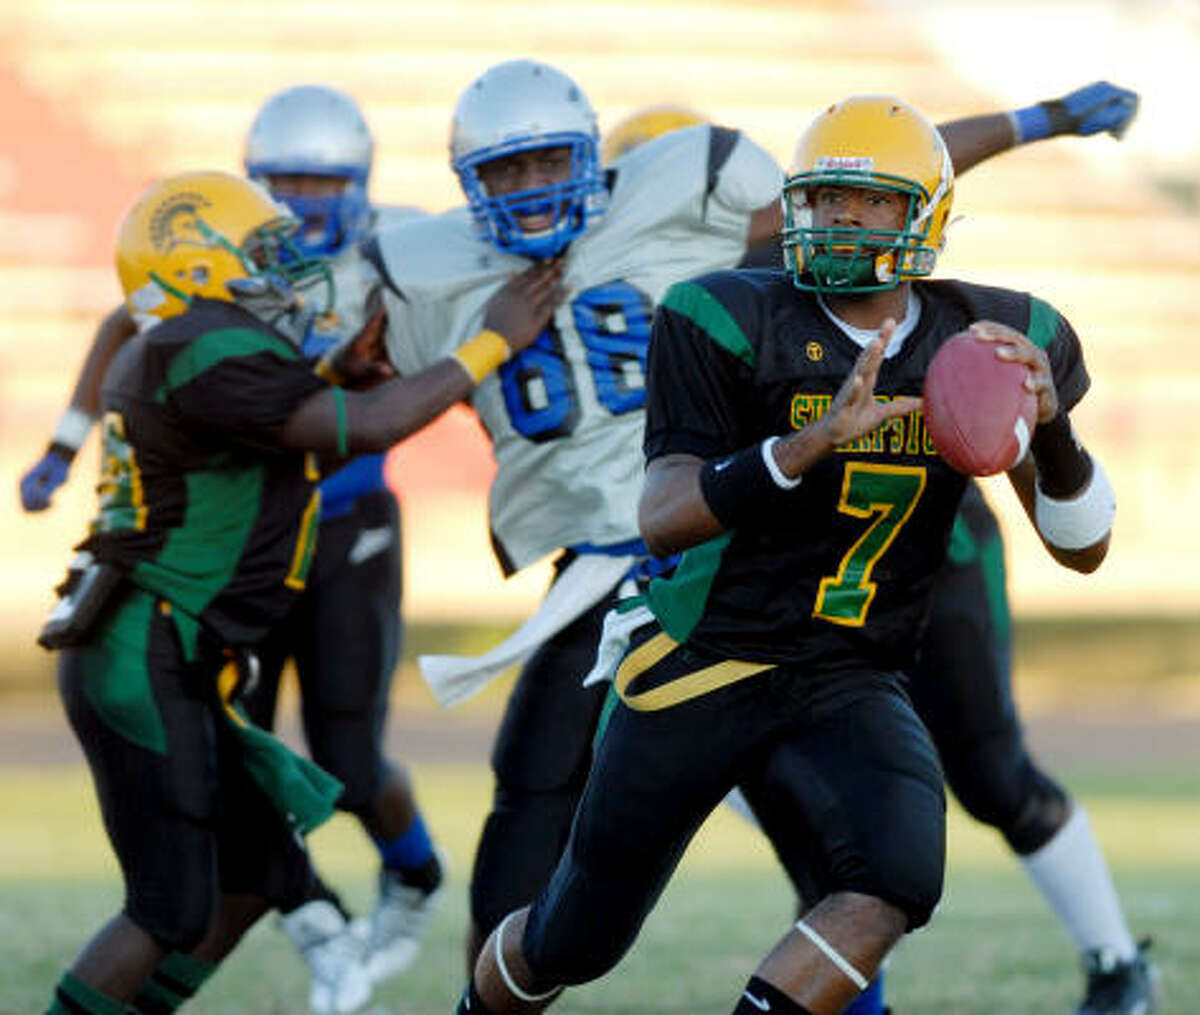 Sam Carter, QB, Hastings The former Sharpstown standout, who transferred from Morton Ranch last week amid an investigation, will play Friday against Atascocita.